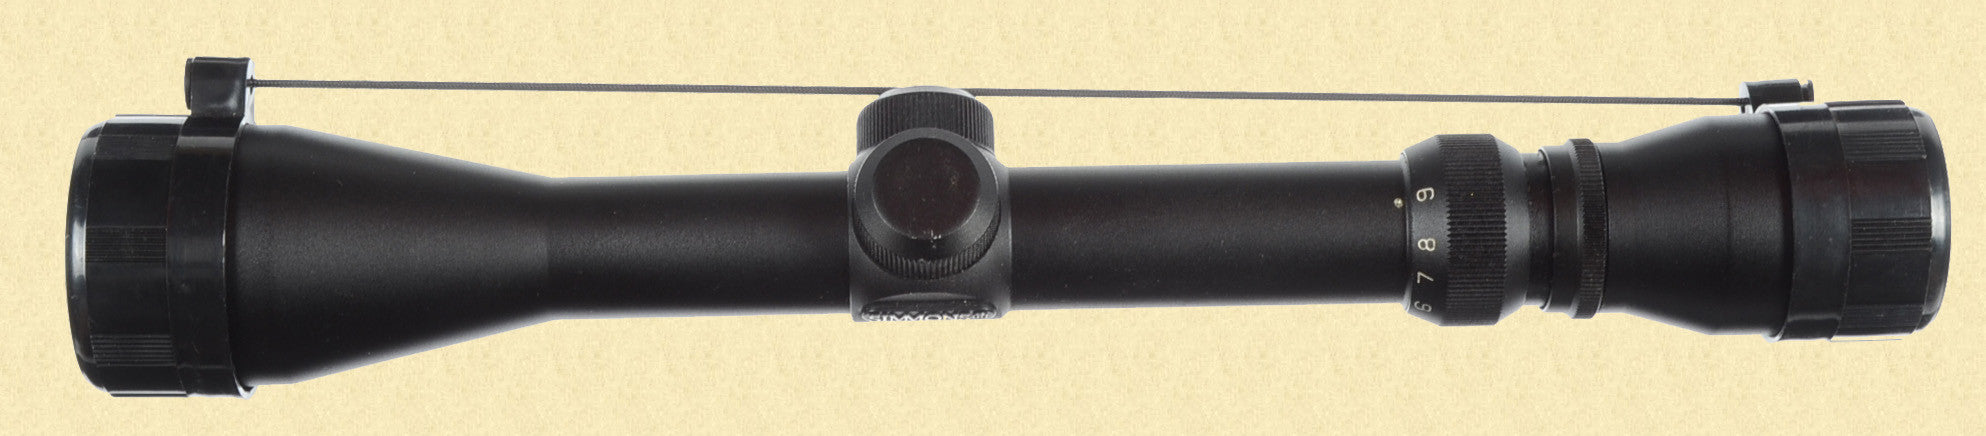 SIMMONS 3-9 X 40 RIFLE SCOPE